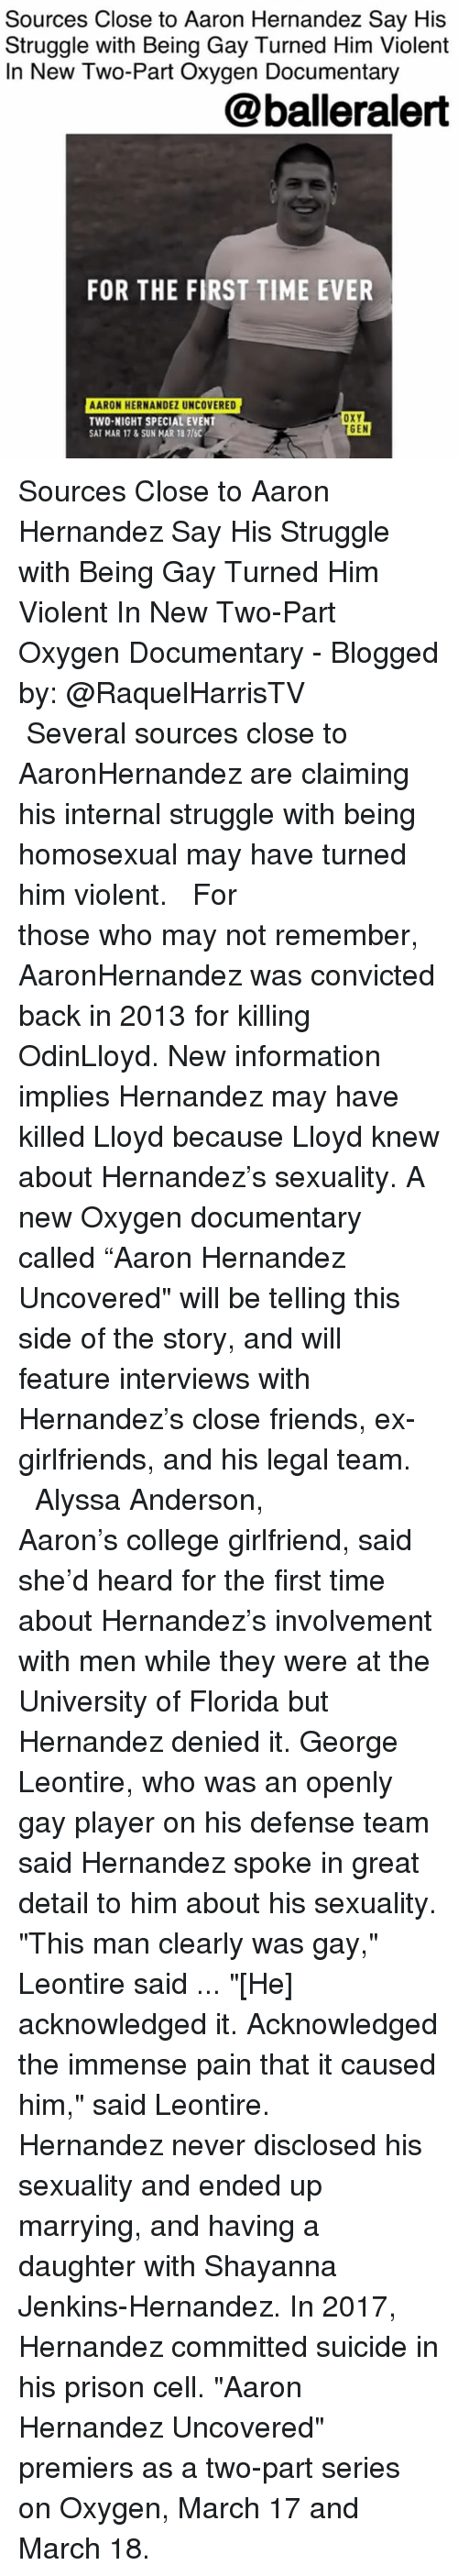 """Aaron Hernandez, College, and Friends: Sources Close to Aaron Hernandez Say His  Struggle with Being Gay Turned Him Violent  In New Two-Part Oxygen Documentary  @balleralert  FOR THE FIRST TIME EVER  ARON HERNANDEZ UNCOVERED  TWO-NIGHT SPECIAL EVENT  SAT MAR 17&SUN MAR 18 7/60  OXY  GEN Sources Close to Aaron Hernandez Say His Struggle with Being Gay Turned Him Violent In New Two-Part Oxygen Documentary - Blogged by: @RaquelHarrisTV ⠀⠀⠀⠀⠀⠀⠀⠀⠀ ⠀⠀⠀⠀⠀⠀⠀⠀⠀ Several sources close to AaronHernandez are claiming his internal struggle with being homosexual may have turned him violent. ⠀⠀⠀⠀⠀⠀⠀⠀⠀ ⠀⠀⠀⠀⠀⠀⠀⠀⠀ For those who may not remember, AaronHernandez was convicted back in 2013 for killing OdinLloyd. New information implies Hernandez may have killed Lloyd because Lloyd knew about Hernandez's sexuality. A new Oxygen documentary called """"Aaron Hernandez Uncovered"""" will be telling this side of the story, and will feature interviews with Hernandez's close friends, ex-girlfriends, and his legal team. ⠀⠀⠀⠀⠀⠀⠀⠀⠀ ⠀⠀⠀⠀⠀⠀⠀⠀⠀ Alyssa Anderson, Aaron's college girlfriend, said she'd heard for the first time about Hernandez's involvement with men while they were at the University of Florida but Hernandez denied it. George Leontire, who was an openly gay player on his defense team said Hernandez spoke in great detail to him about his sexuality. """"This man clearly was gay,"""" Leontire said ... """"[He] acknowledged it. Acknowledged the immense pain that it caused him,"""" said Leontire. ⠀⠀⠀⠀⠀⠀⠀⠀⠀ ⠀⠀⠀⠀⠀⠀⠀⠀⠀ Hernandez never disclosed his sexuality and ended up marrying, and having a daughter with Shayanna Jenkins-Hernandez. In 2017, Hernandez committed suicide in his prison cell. """"Aaron Hernandez Uncovered"""" premiers as a two-part series on Oxygen, March 17 and March 18."""